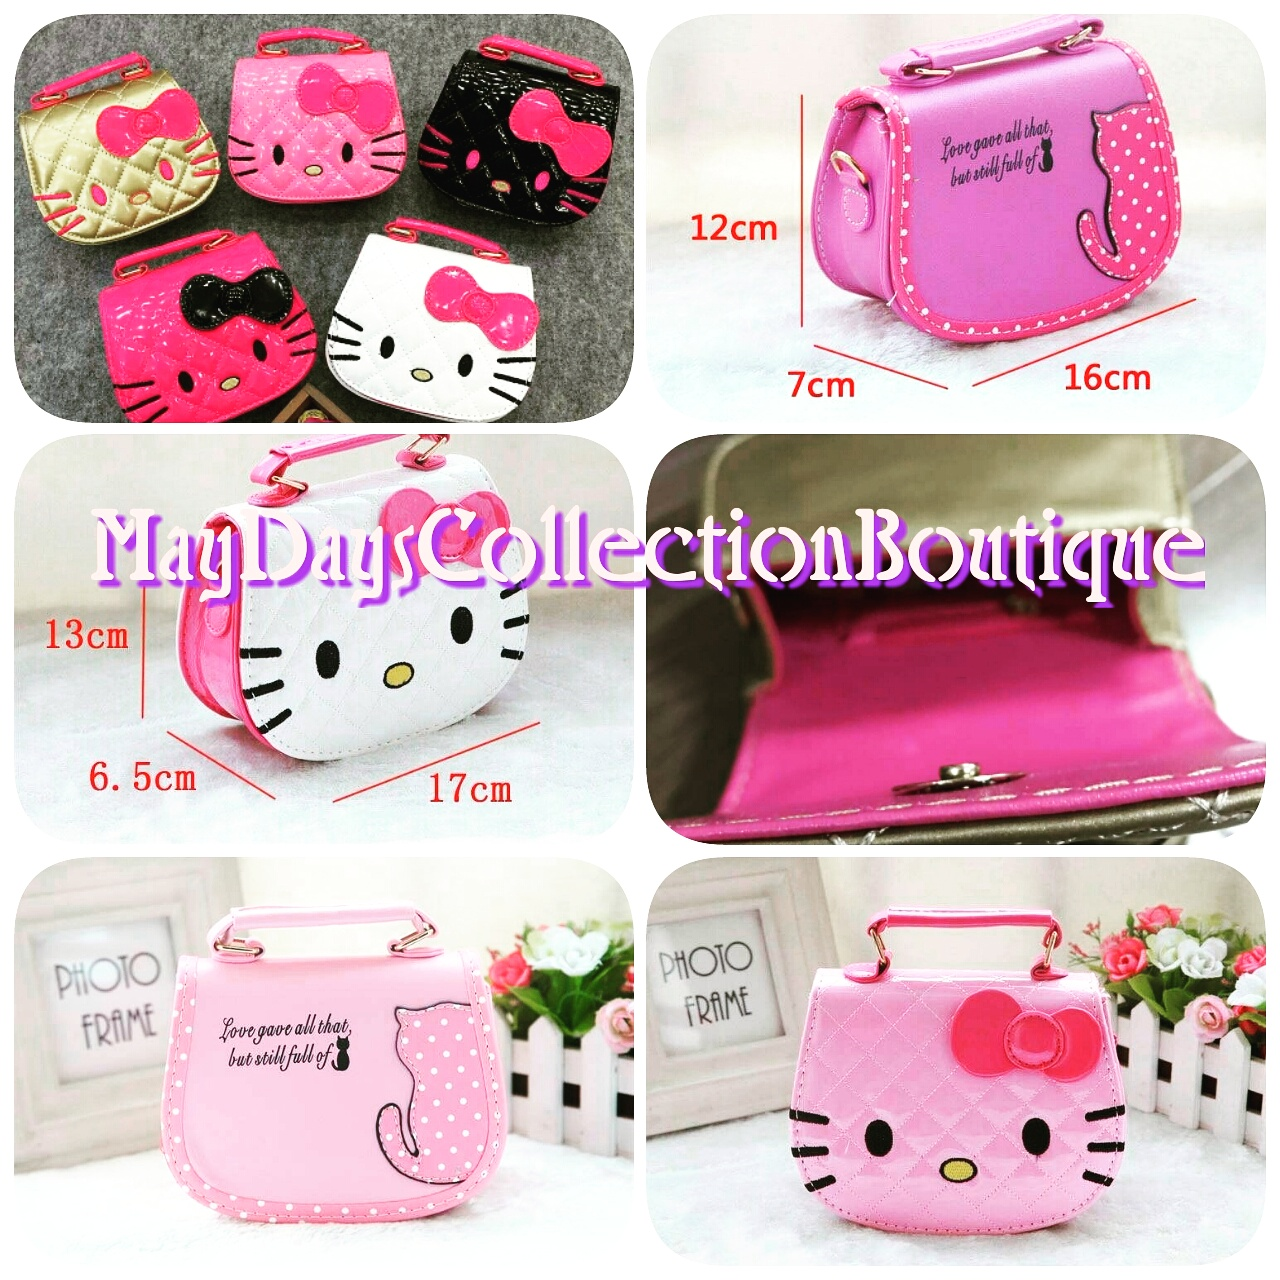 7dd6af622553 MayDay s Collection Boutique  BAG HELLO KITTY